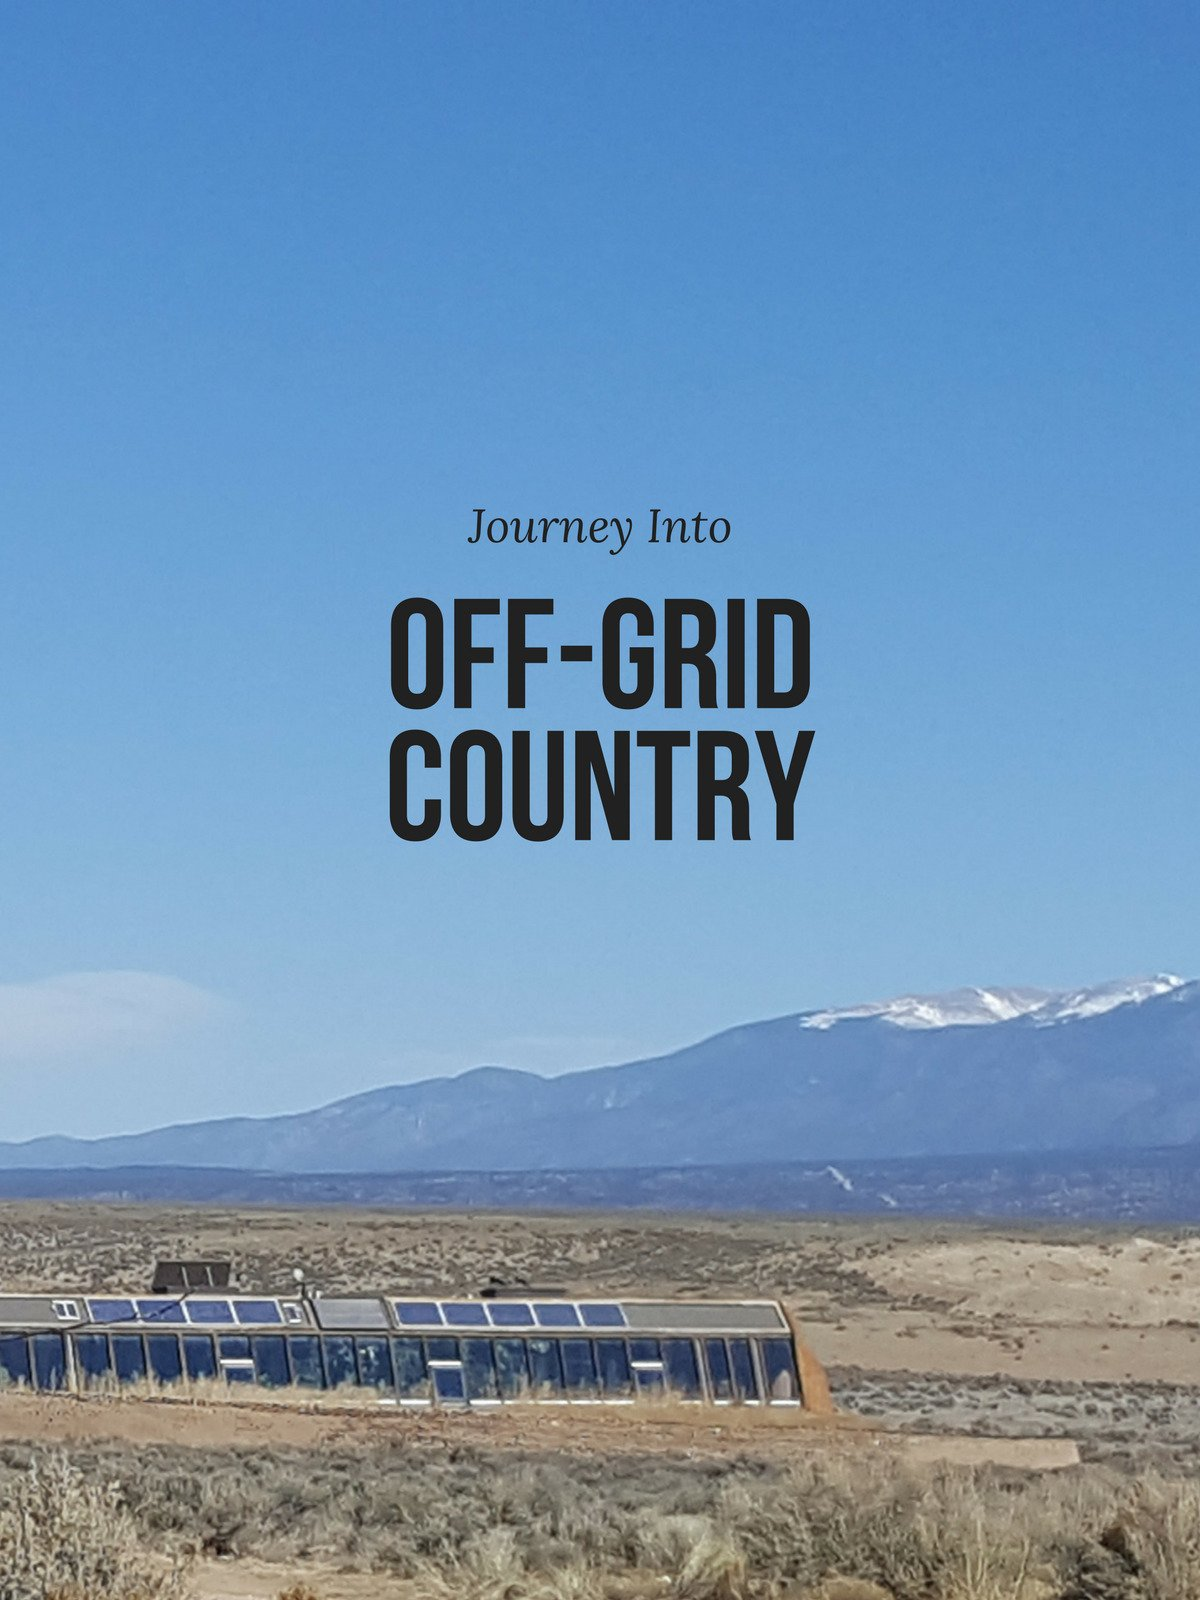 Clip: My Journey Into Off-Grid Country